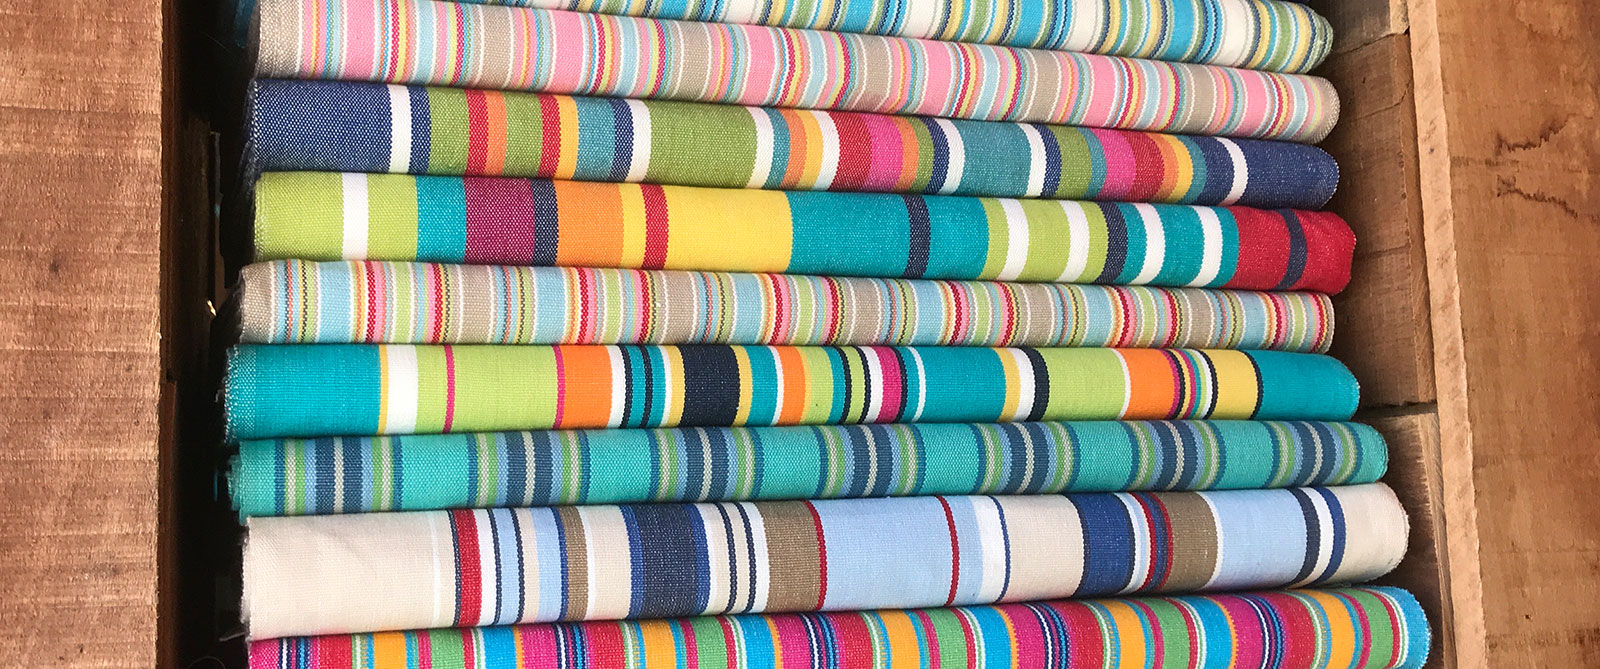 extra wide deck chair fabric 2